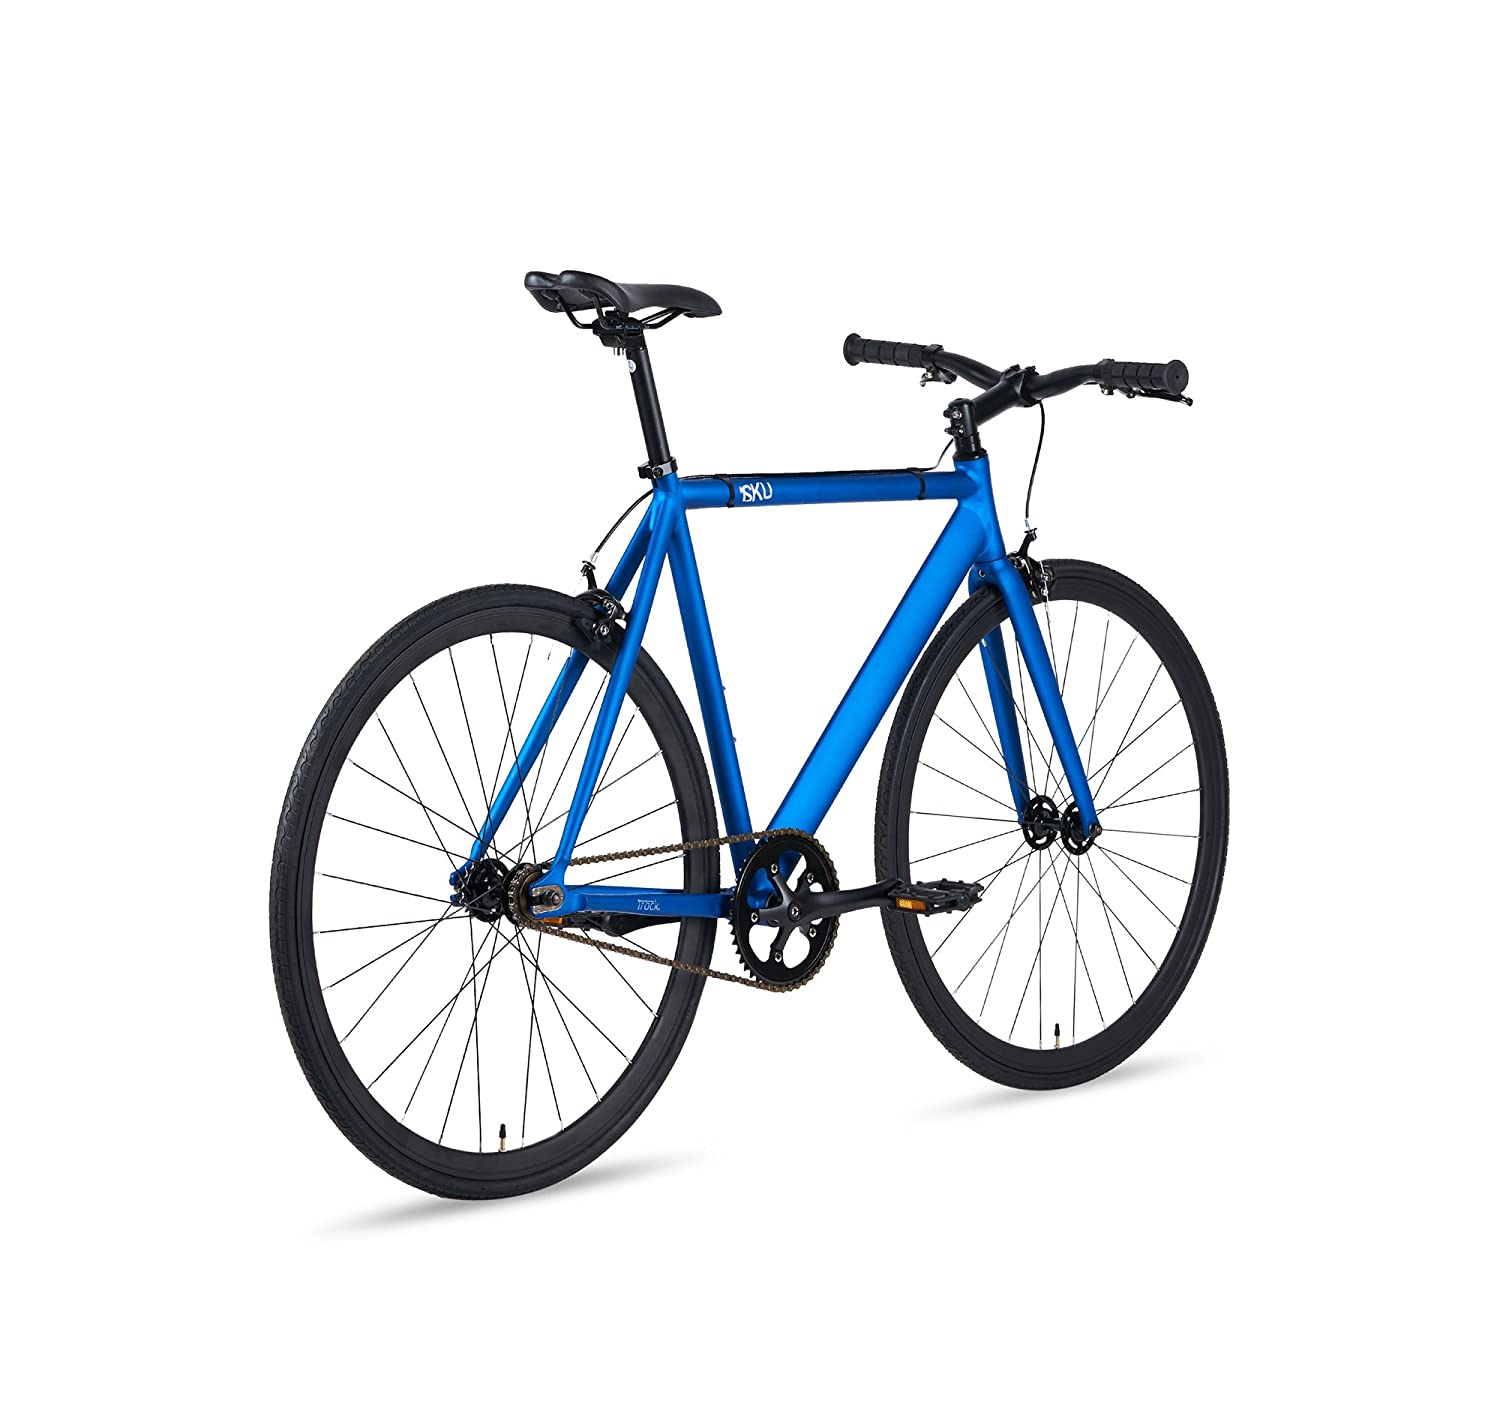 Amazon.com : 6KU Aluminum Fixed Gear Single-Speed Fixie Urban Track ...